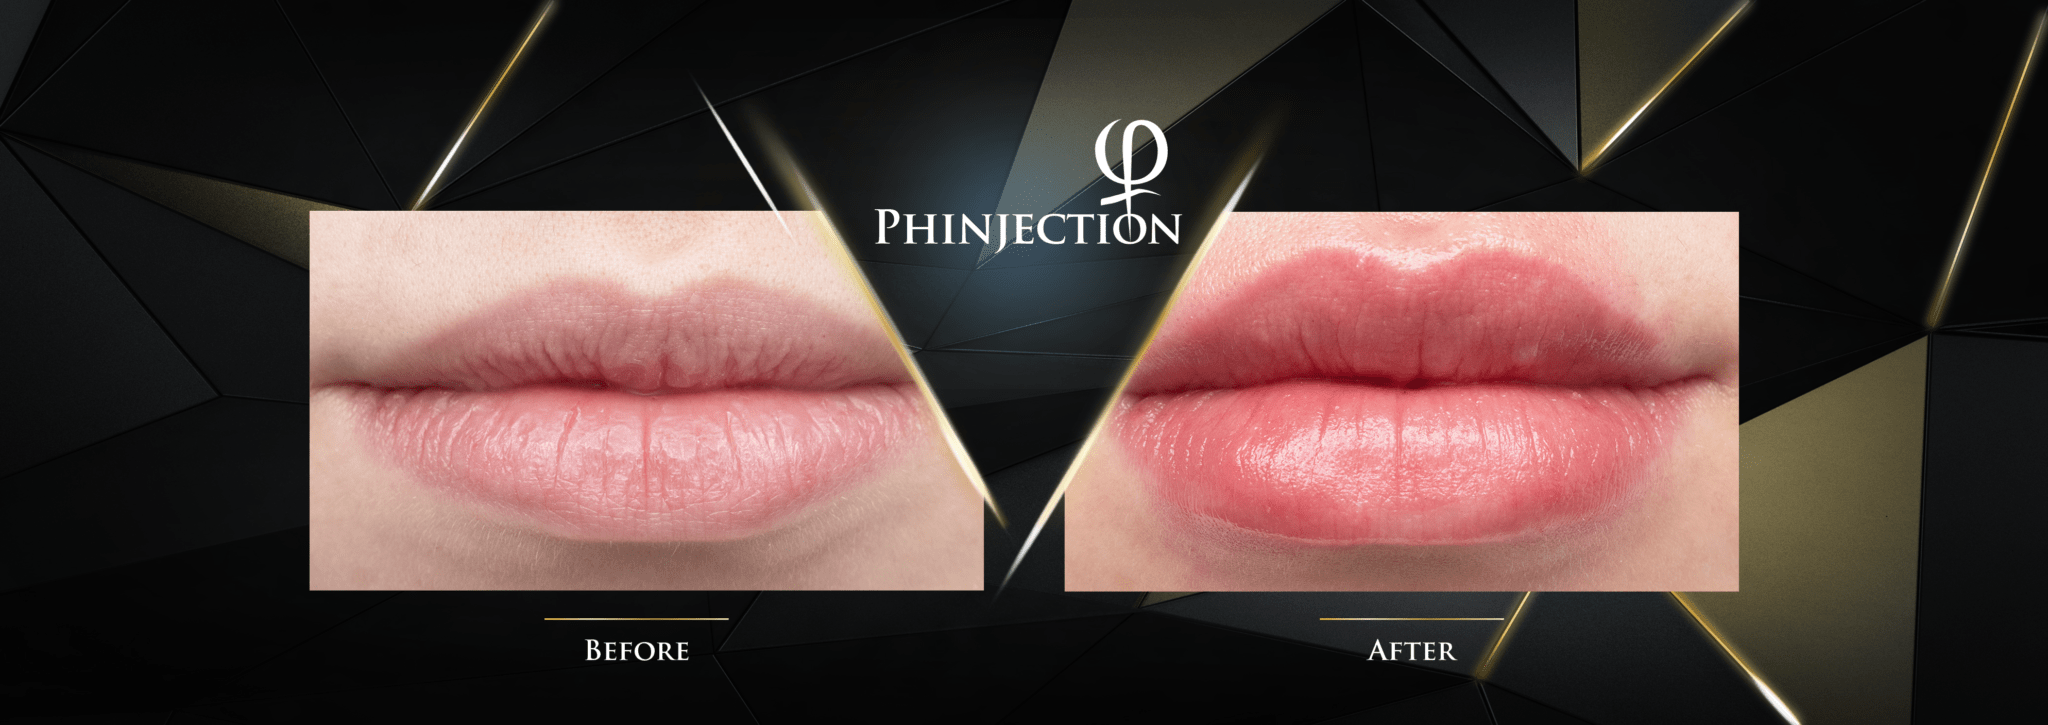 PHINJECTION-Before-After